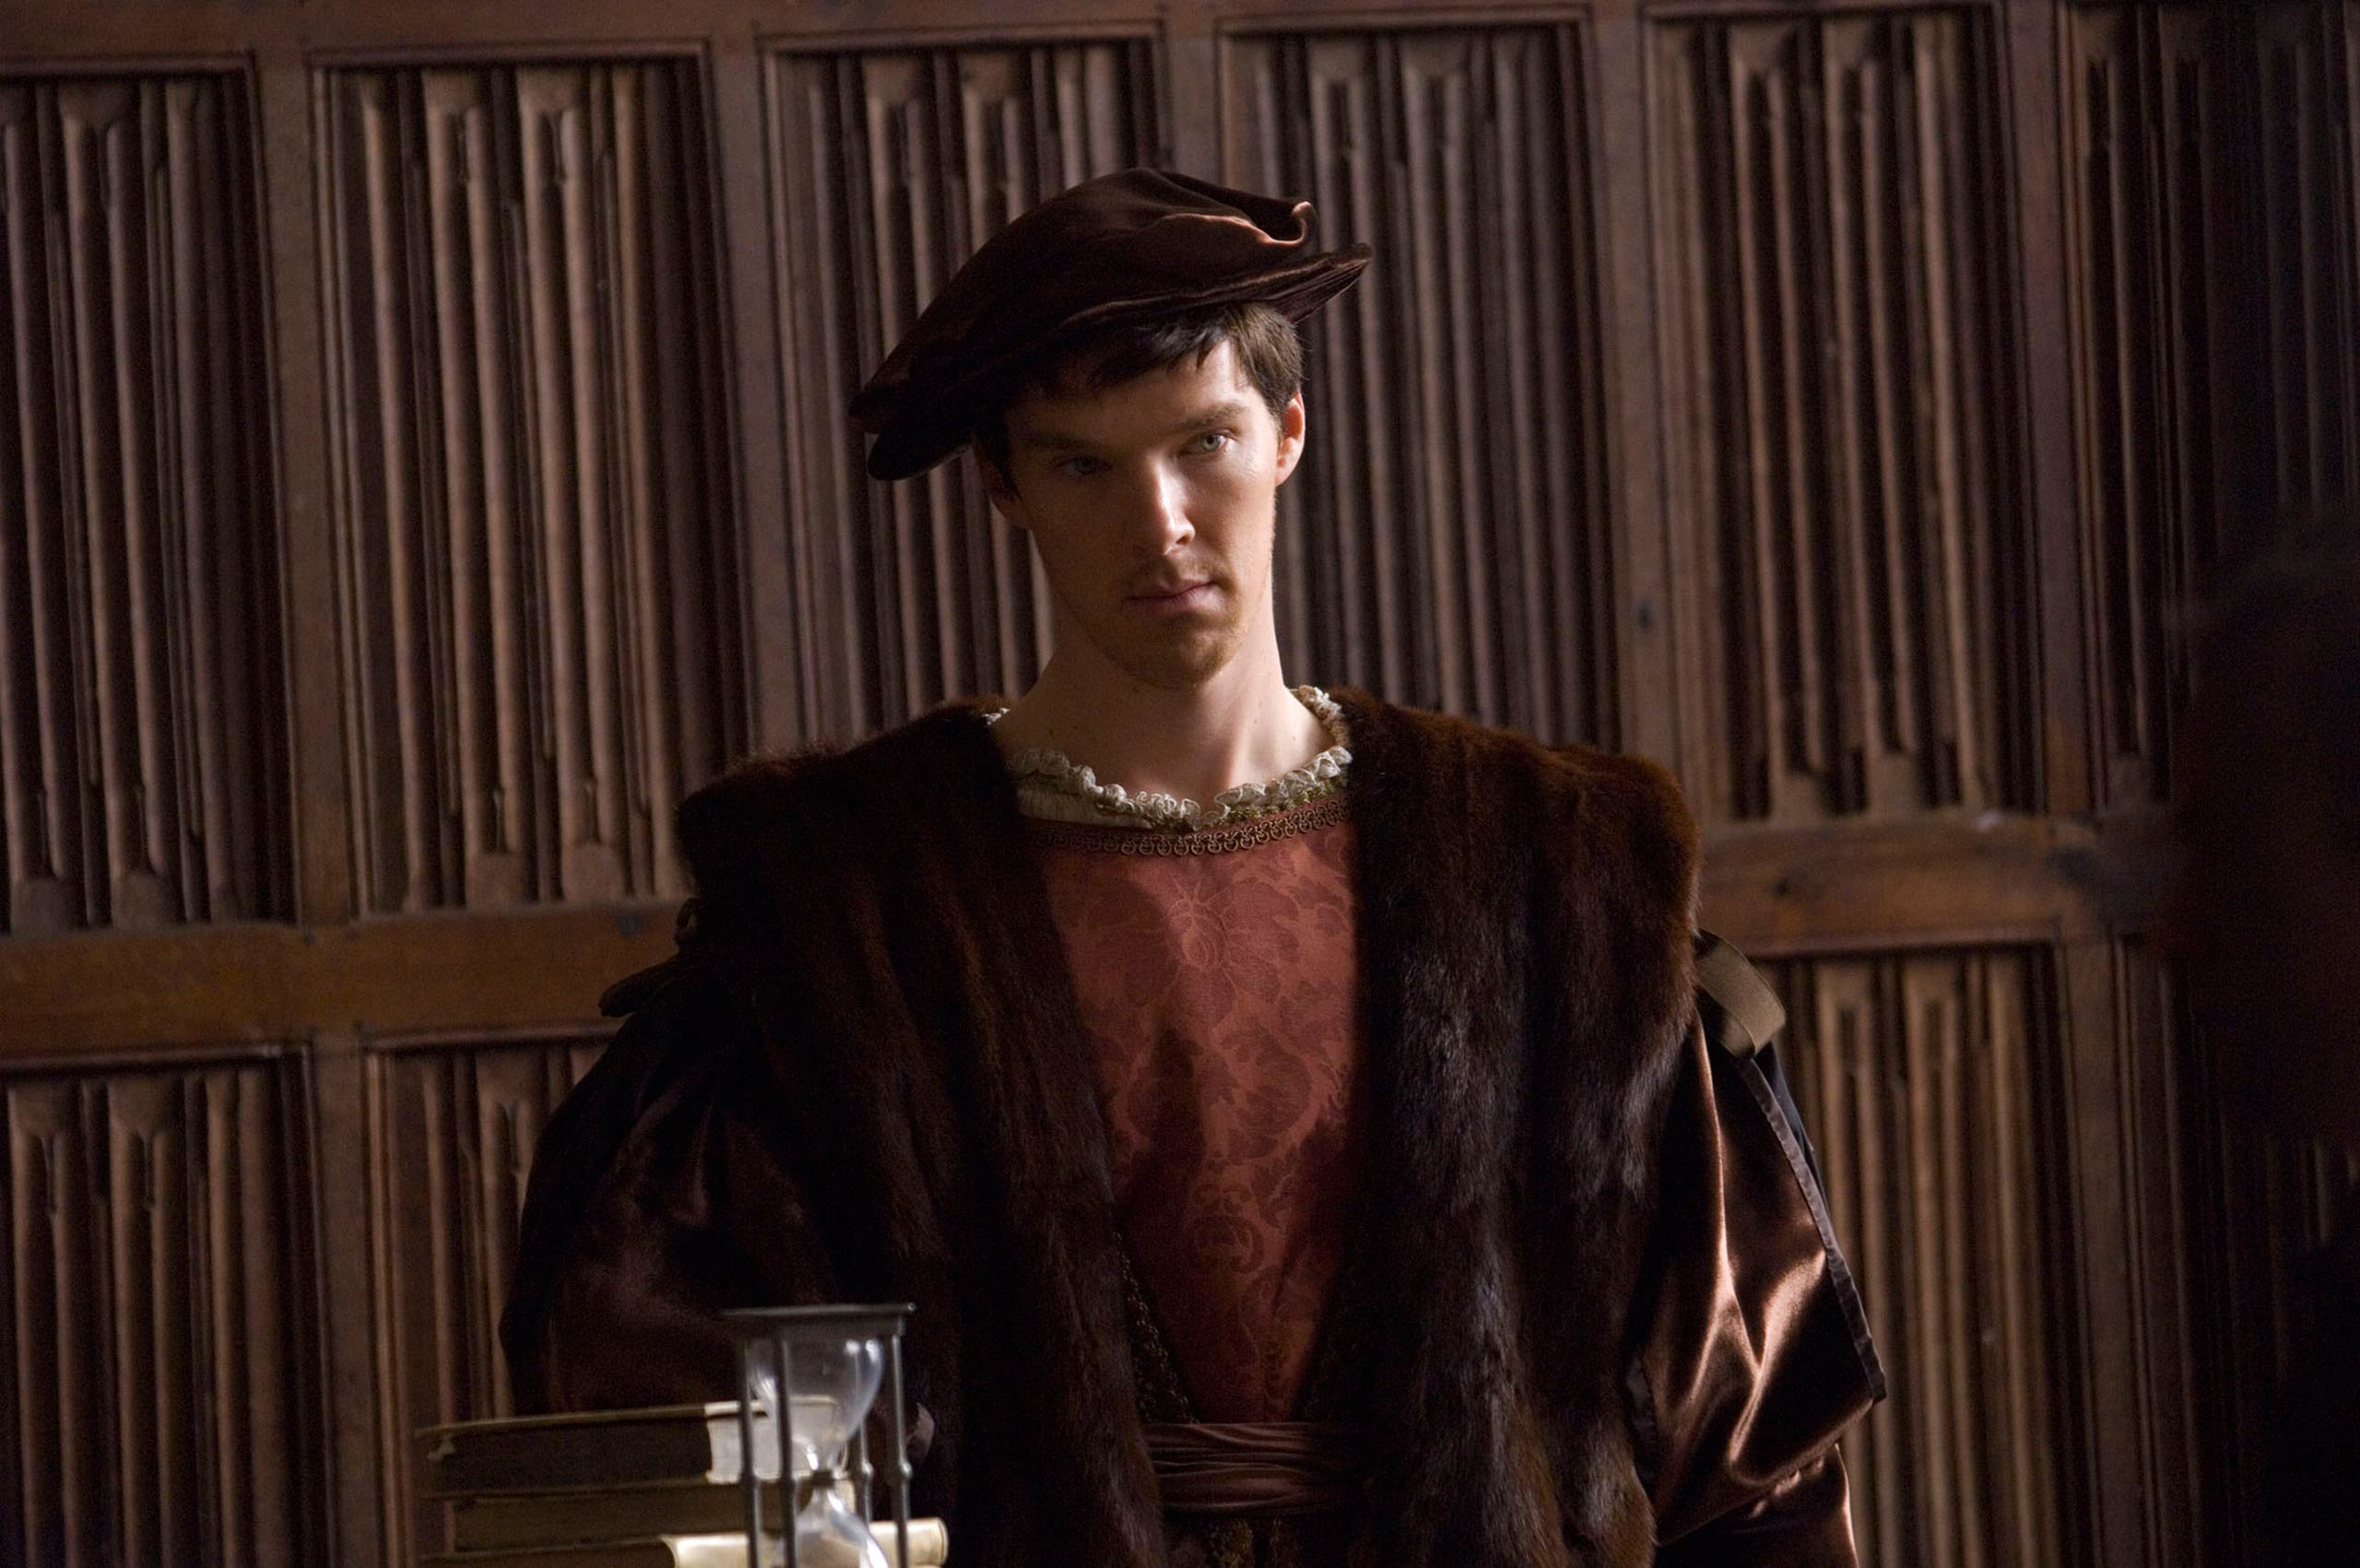 <strong>The Other Boleyn Girl</strong> Cumberbatch plays William Carey, a courtier and husband to Mary Boleyn (Scarlett Johansson) in this 2008 historical drama pic.